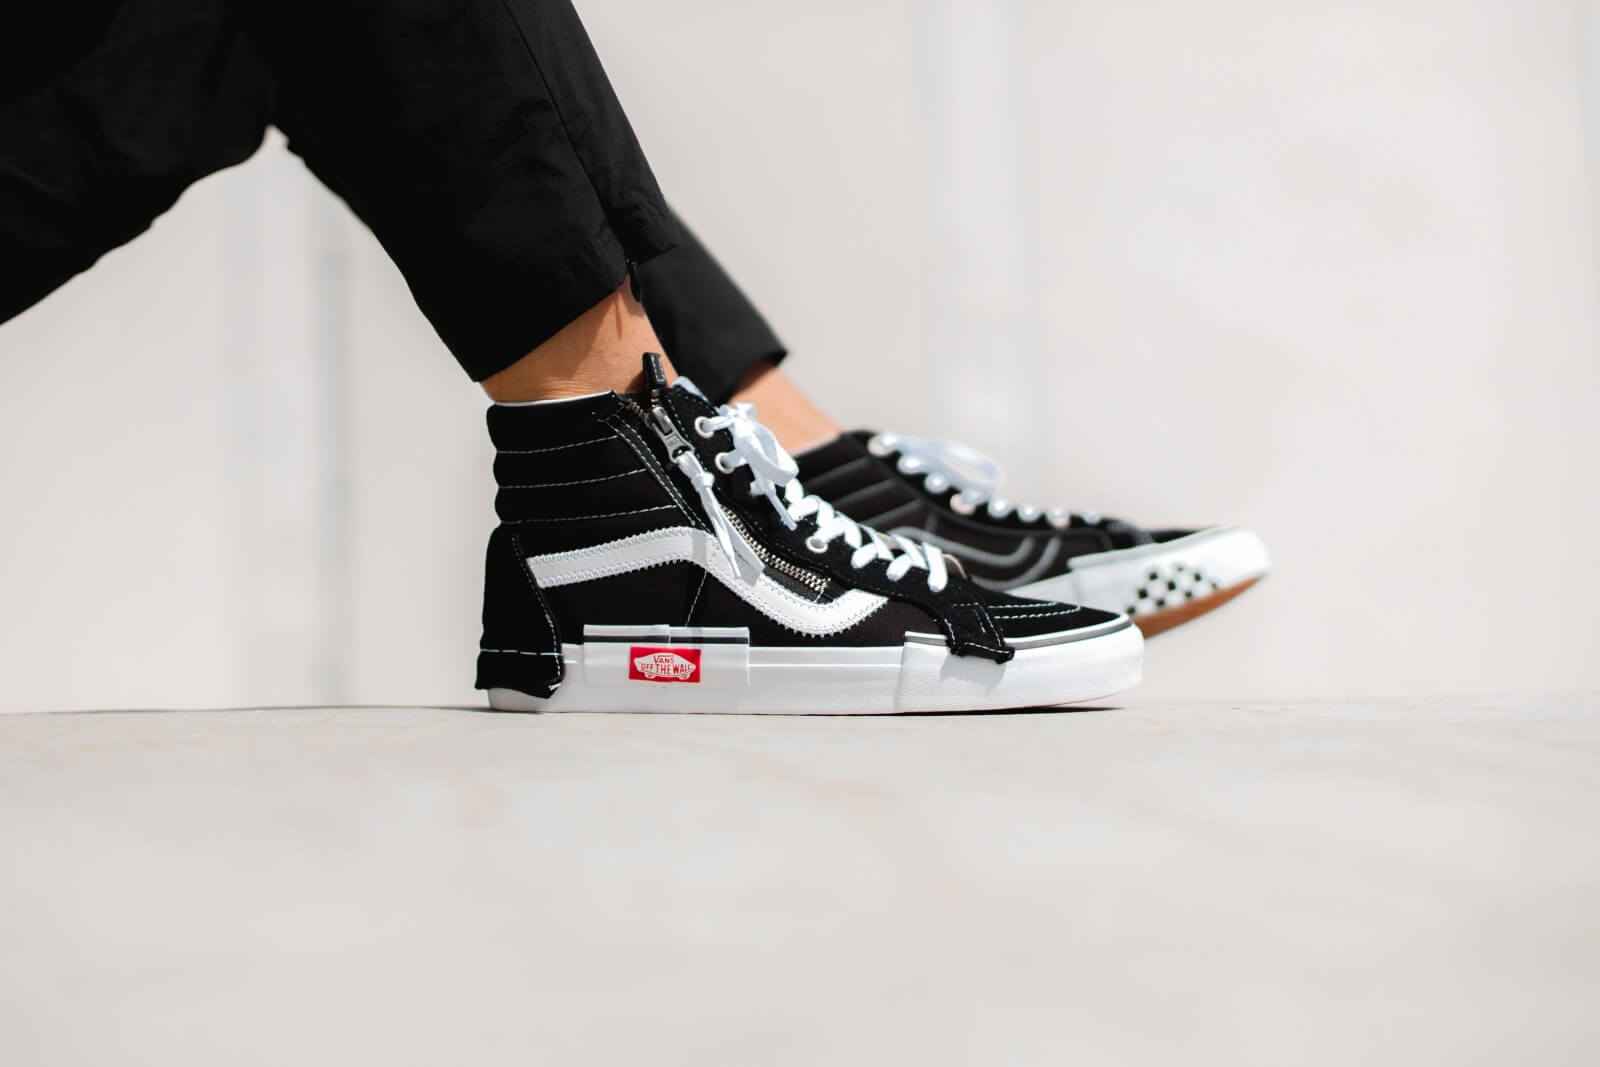 Vans Sk8-Hi Reissue Cap Black/True White - VN0A3WM16BT